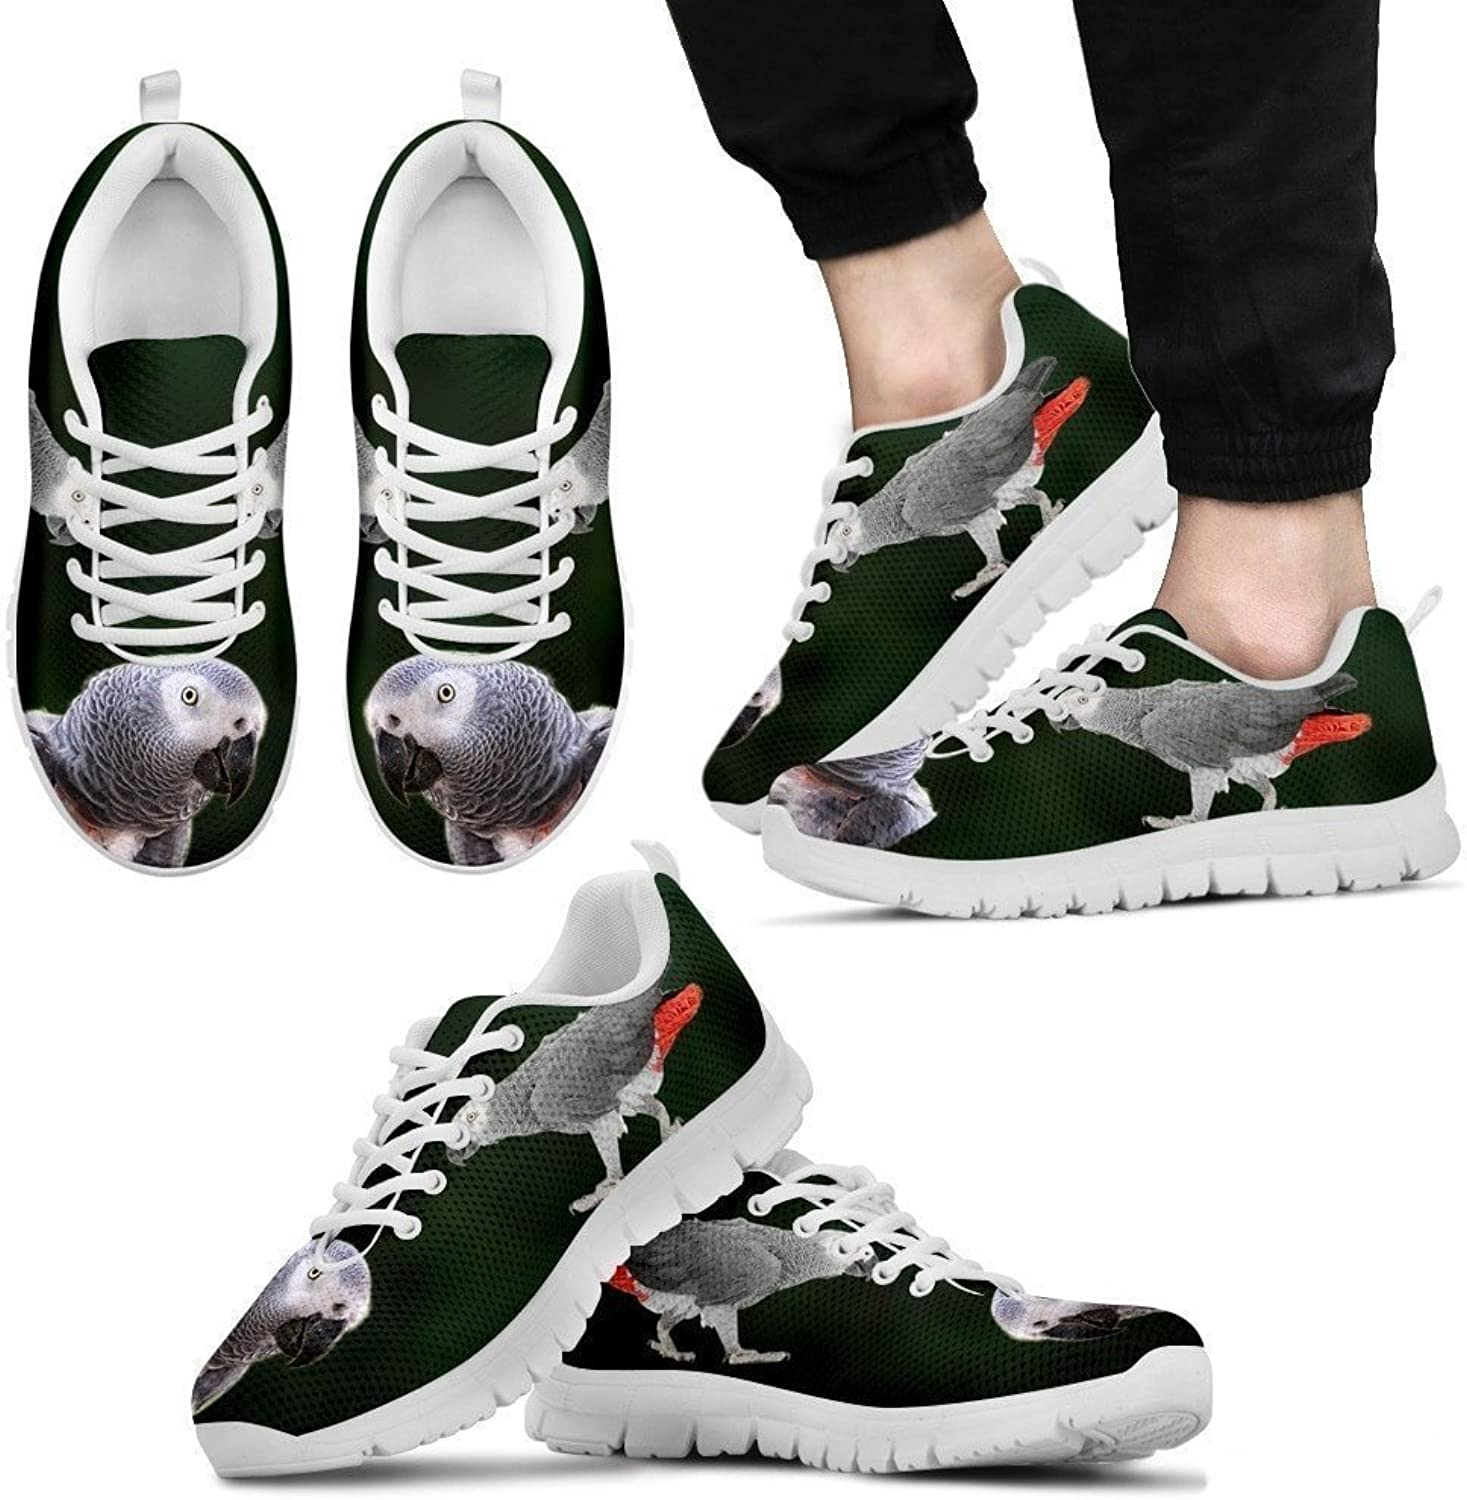 Pet By You African Grey Parred Walking 3D Printed Sneakers, Light Weight Sneakers for Men, Breathable Jogging Running Gym shoes, Mens Sneakers - US Sizes 5-12.